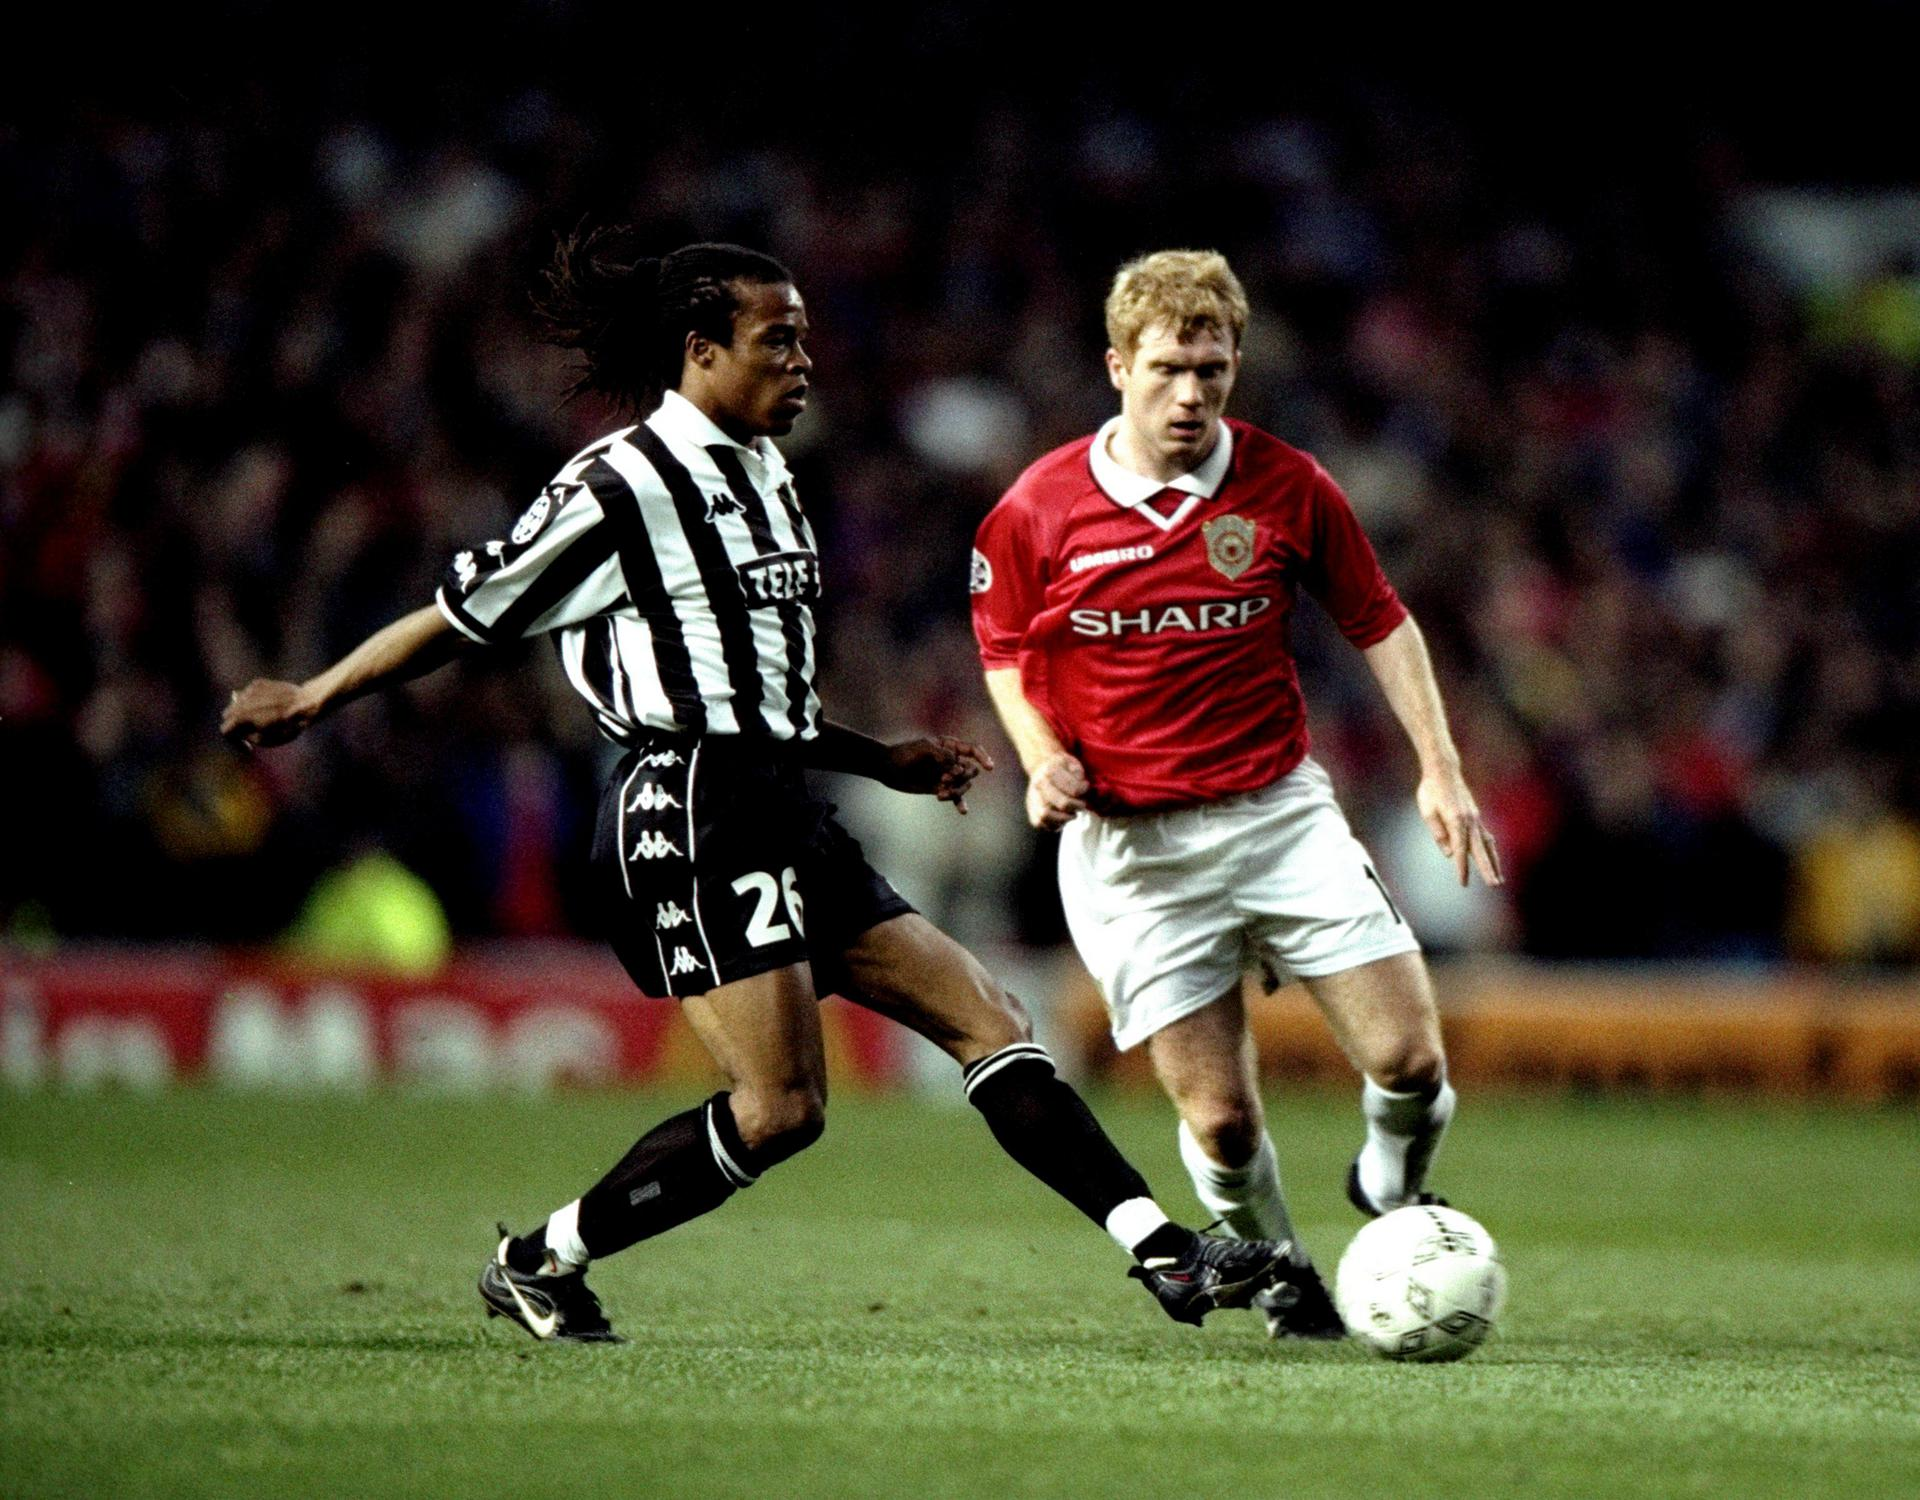 Edgar Davids and Paul Scholes.